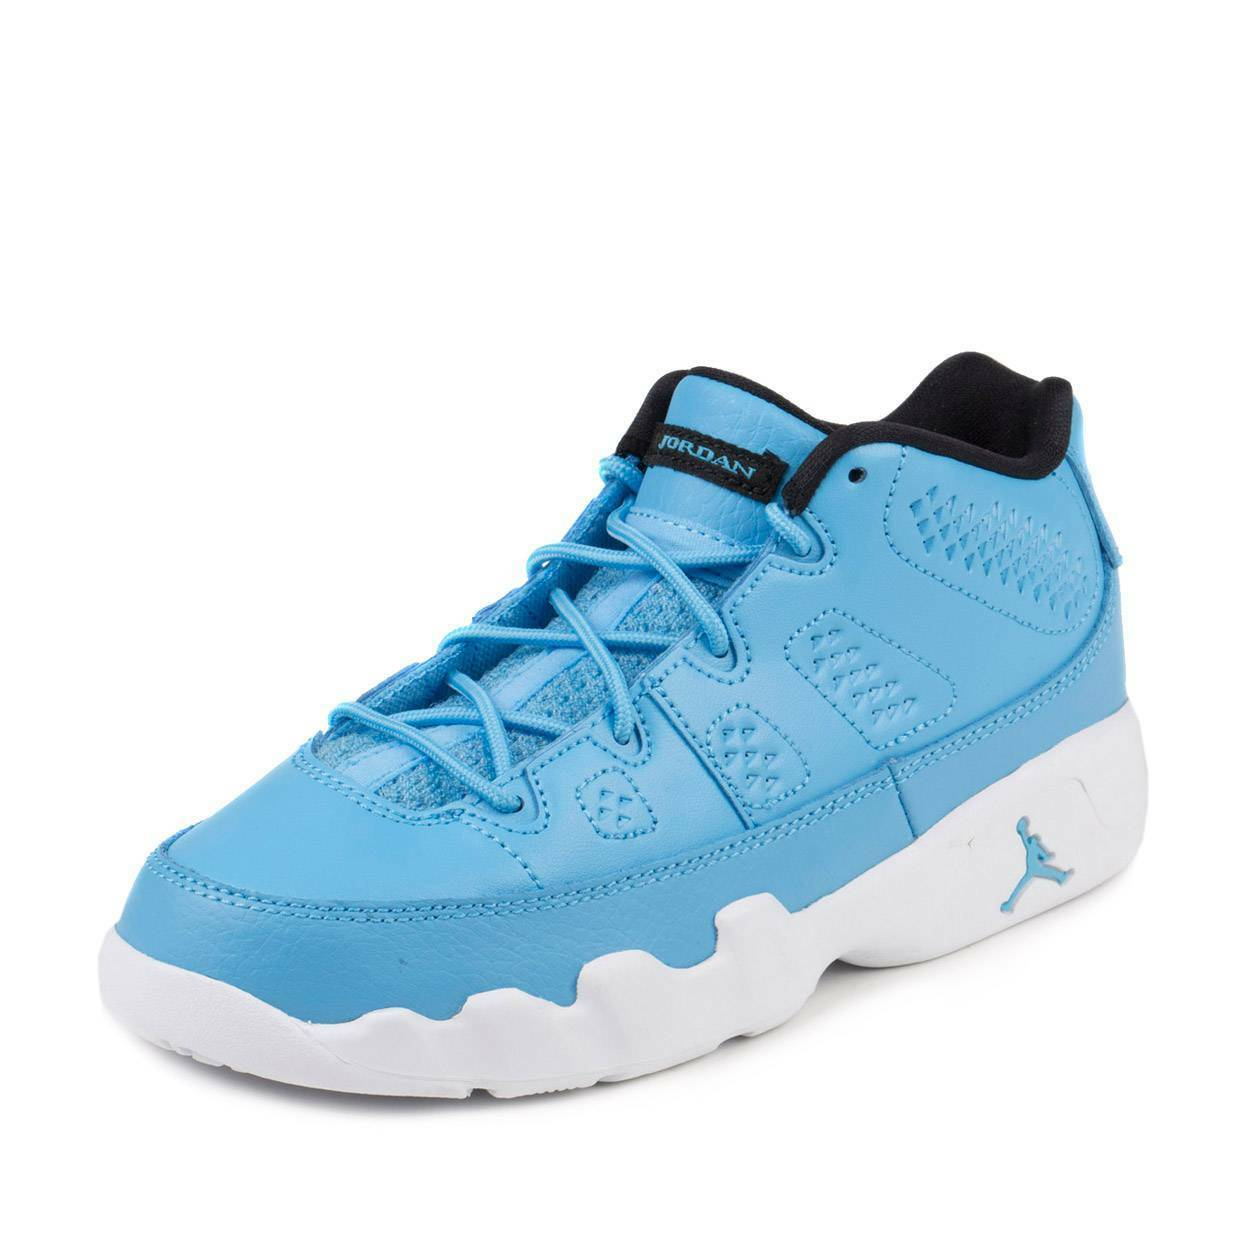 huge selection of b66ed 2dfd9 Nike Baby Boys Jordan 9 Retro Low Low Low BP University Blau Weiß  833905-401 45ba4e